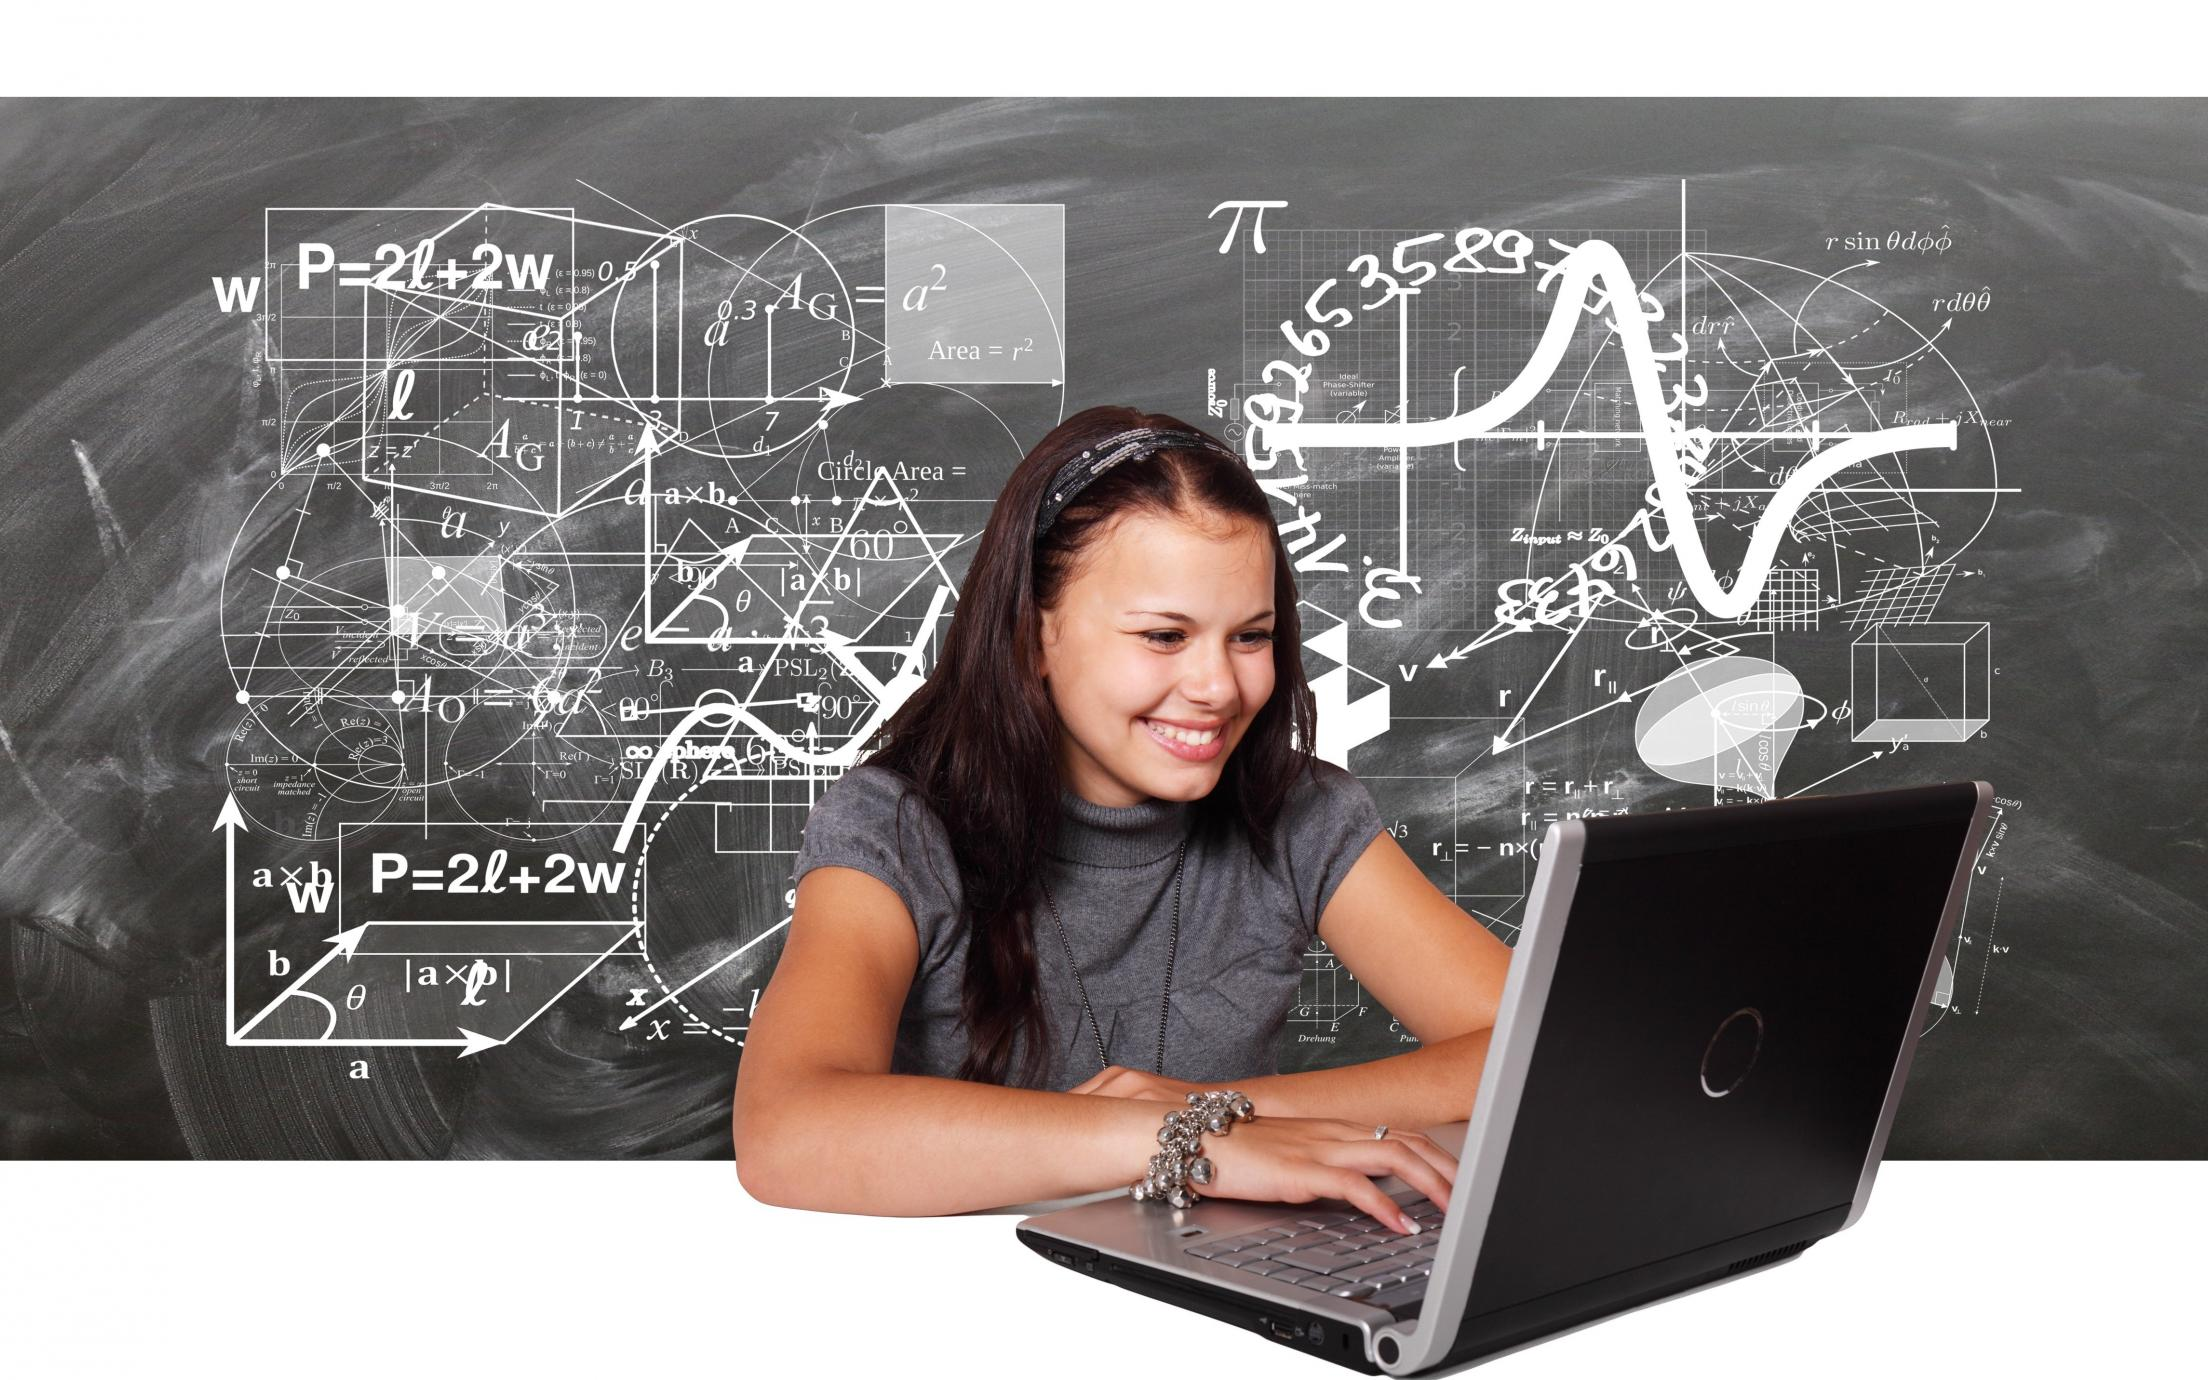 Female student engaging with research